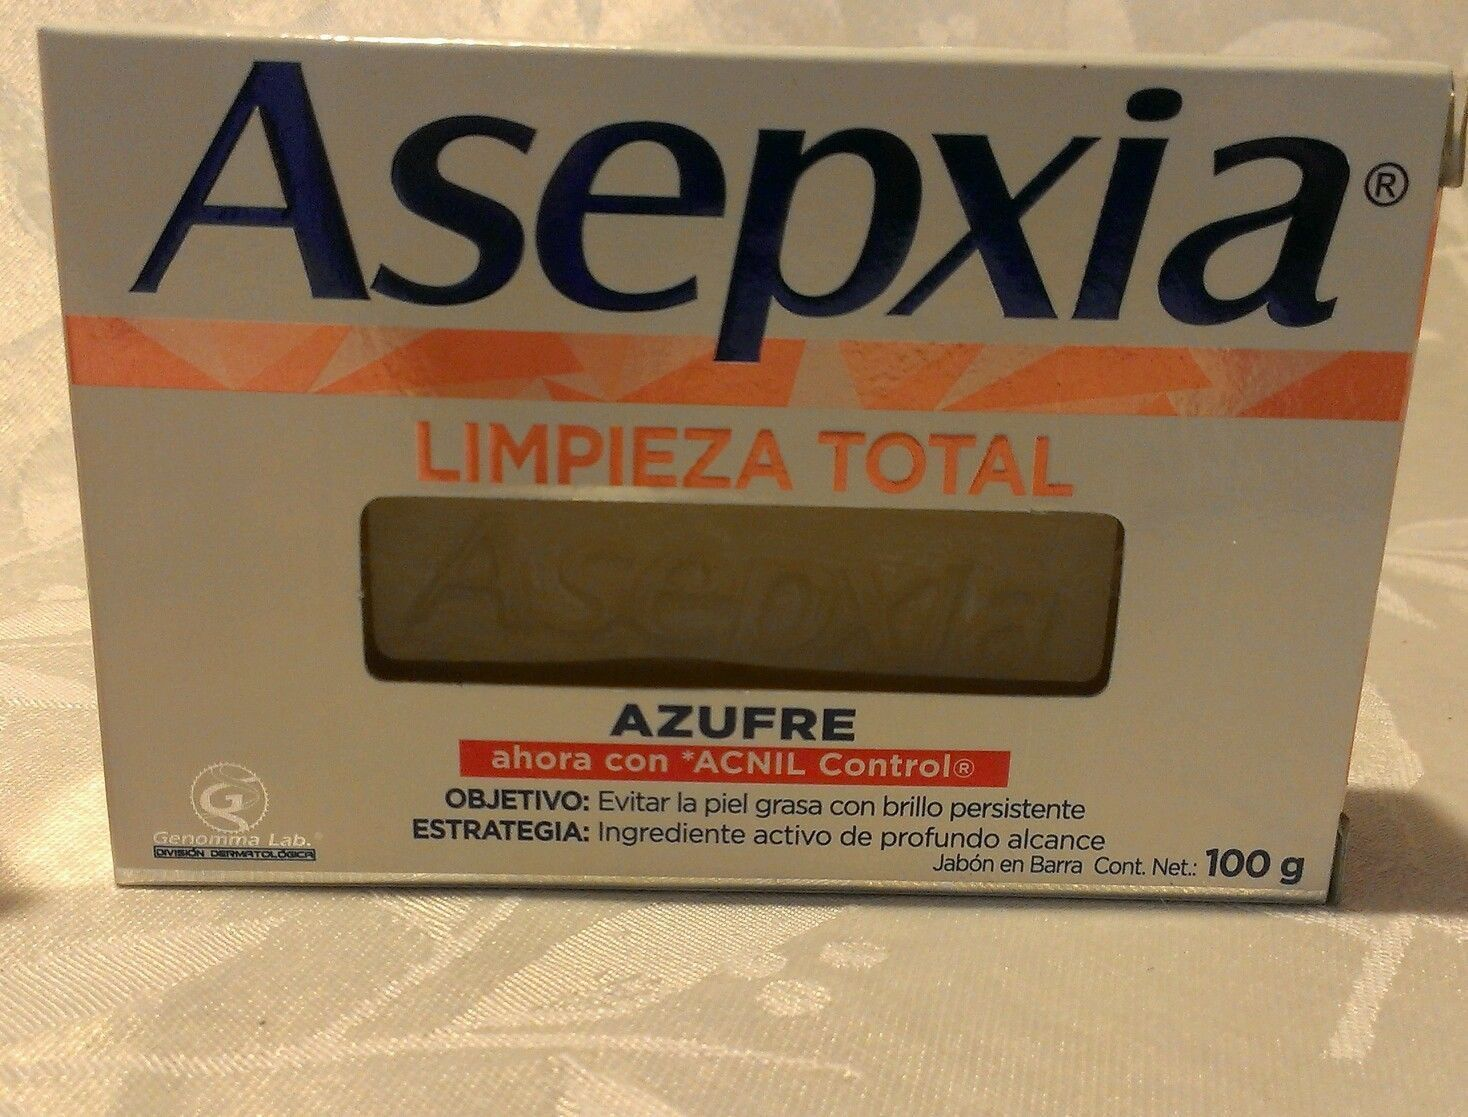 ASEPXIA AZUFRE 100g x 2 bars of acne fighting soap NEW FORMULA !!!!!